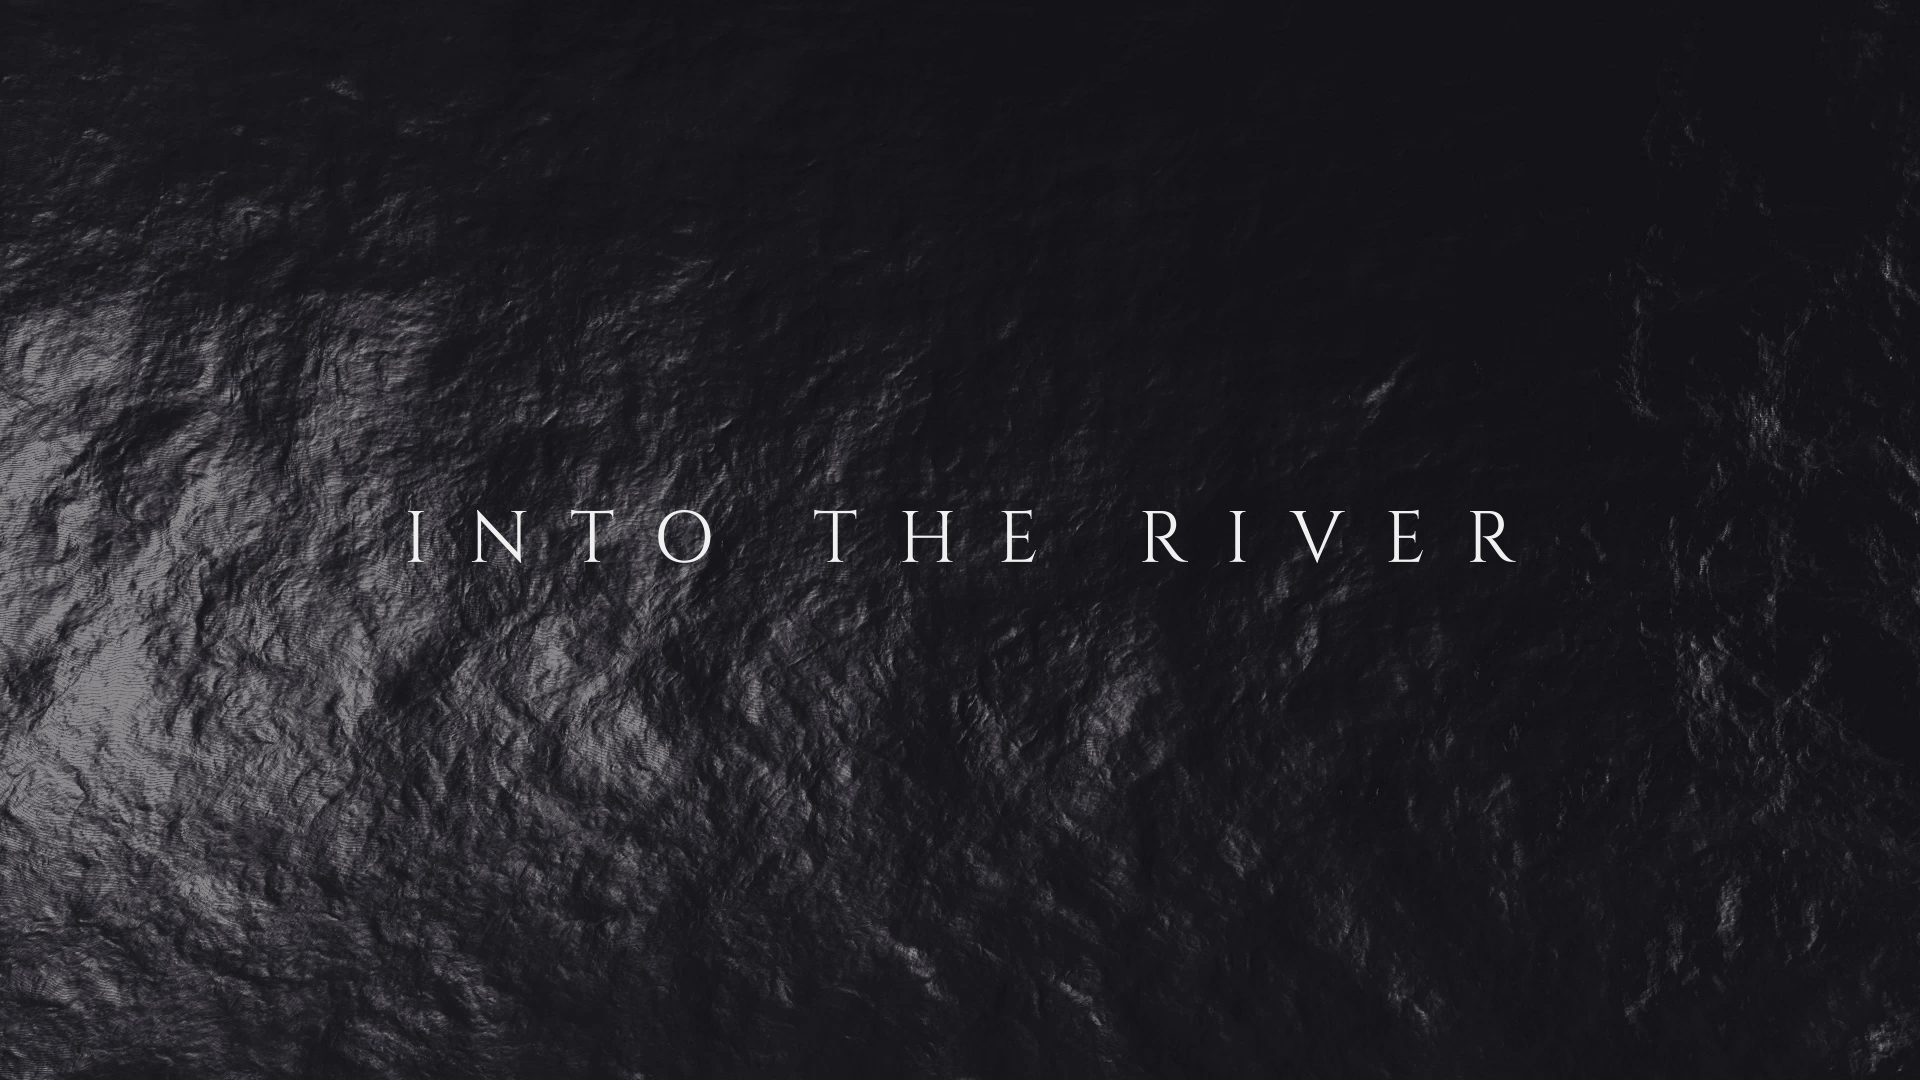 Into the River.jpg